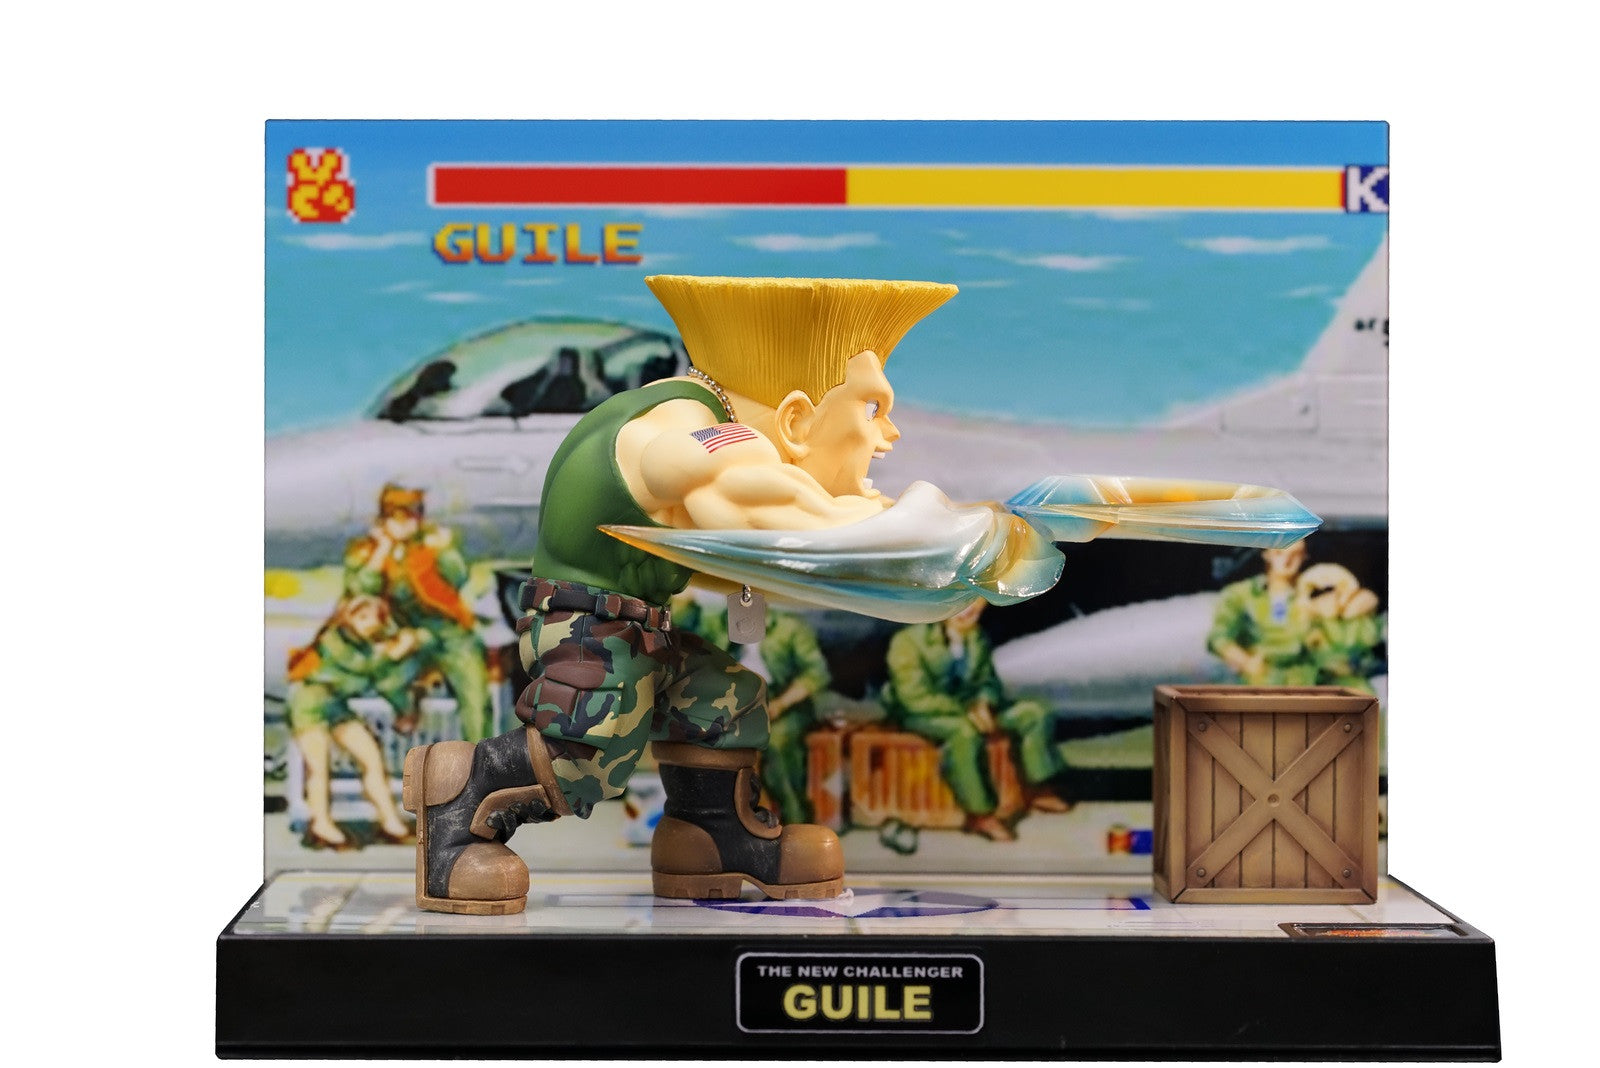 Street Fighter The New Challenger Figure 04 - Guile Retropixl Retrogaming retro gaming Rare Console Collector Limited Edition Japan Import